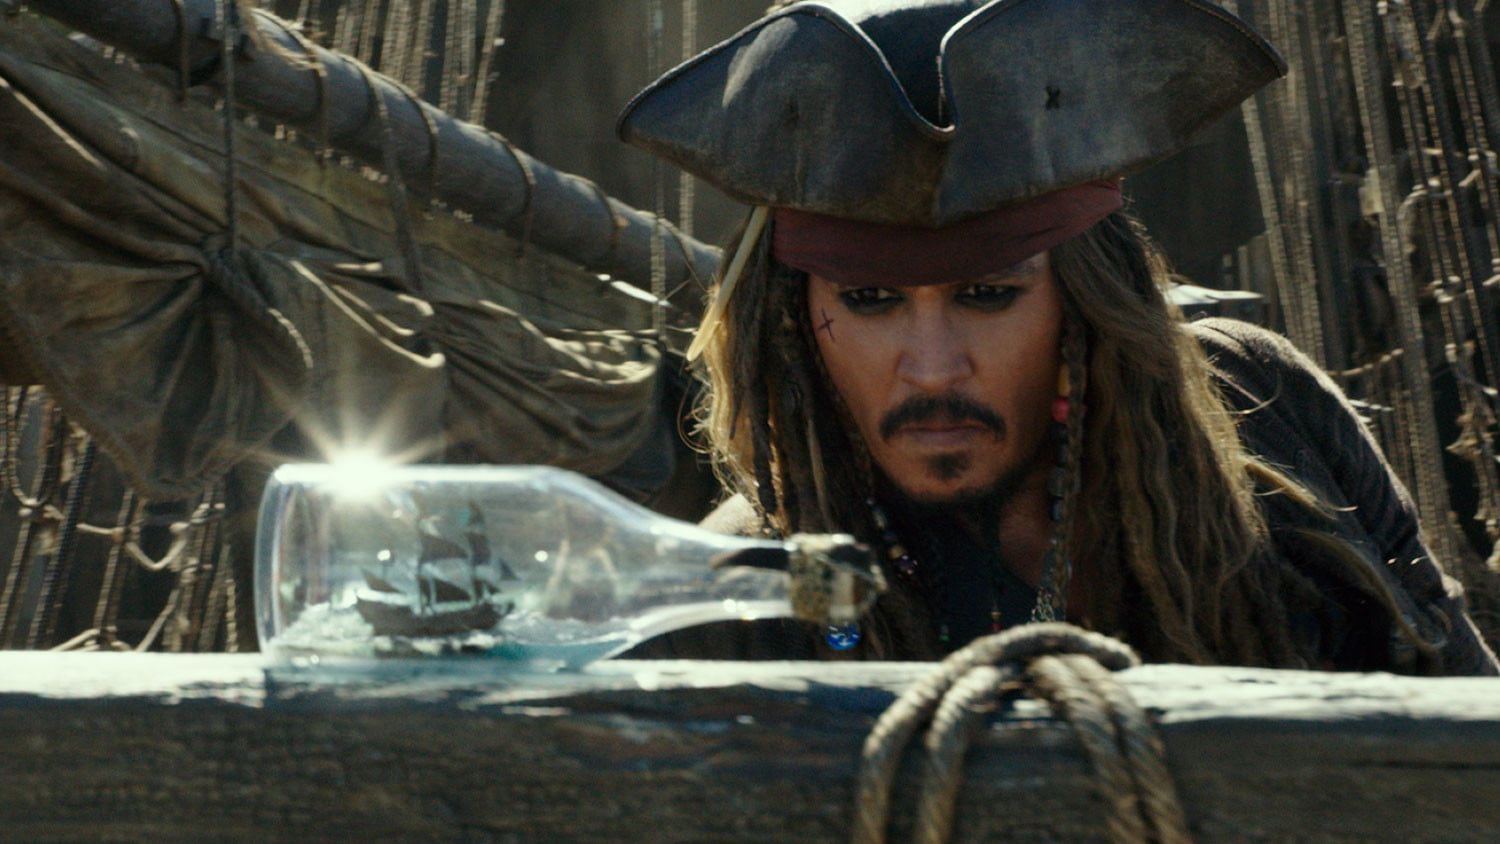 Image result for Pirates of the Caribbean: Dead Men Tell No Tales